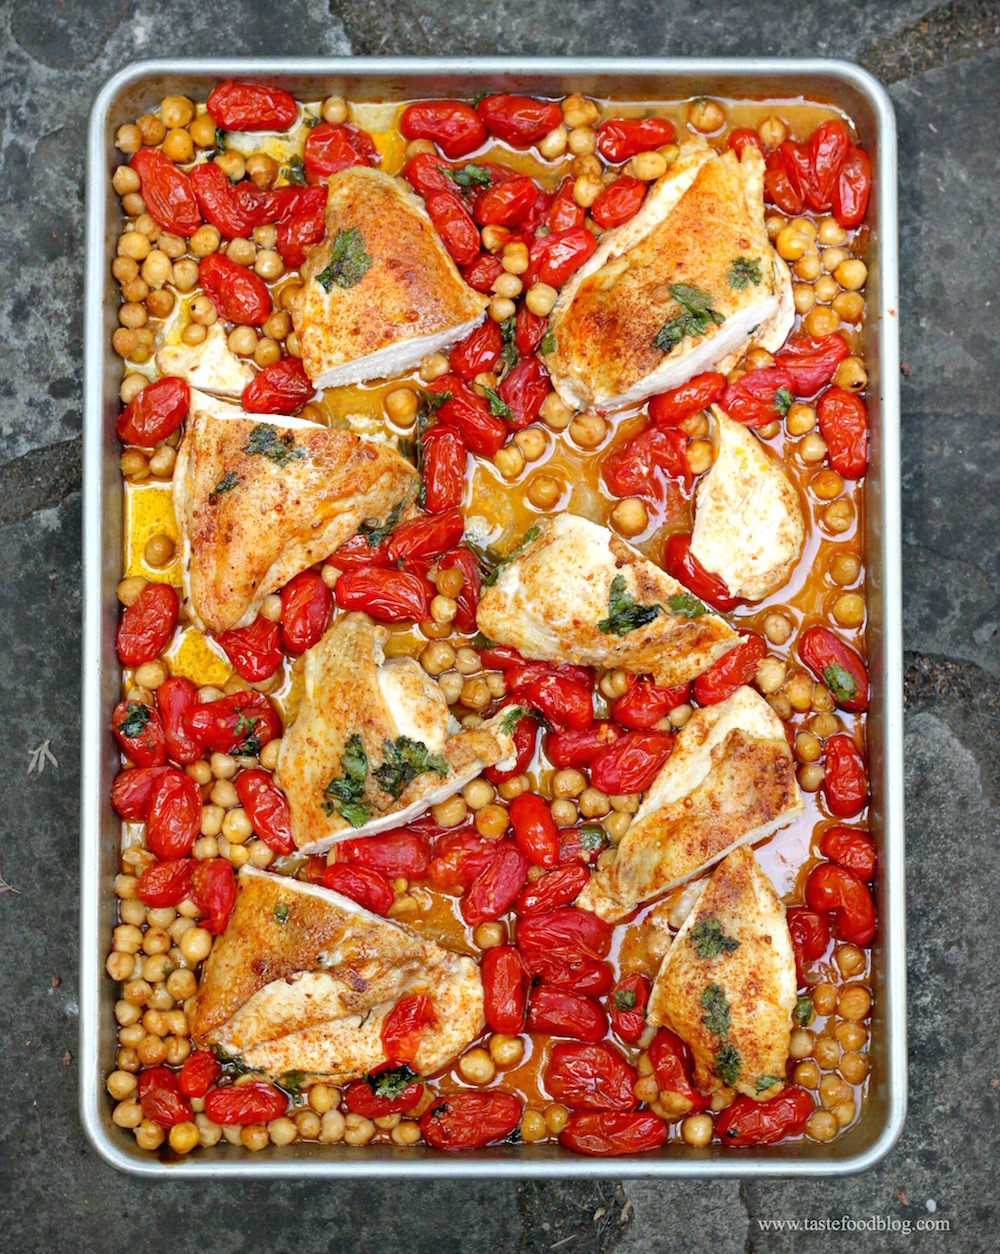 25. Roasted Chicken Breasts with Tomatoes and Chickpeas